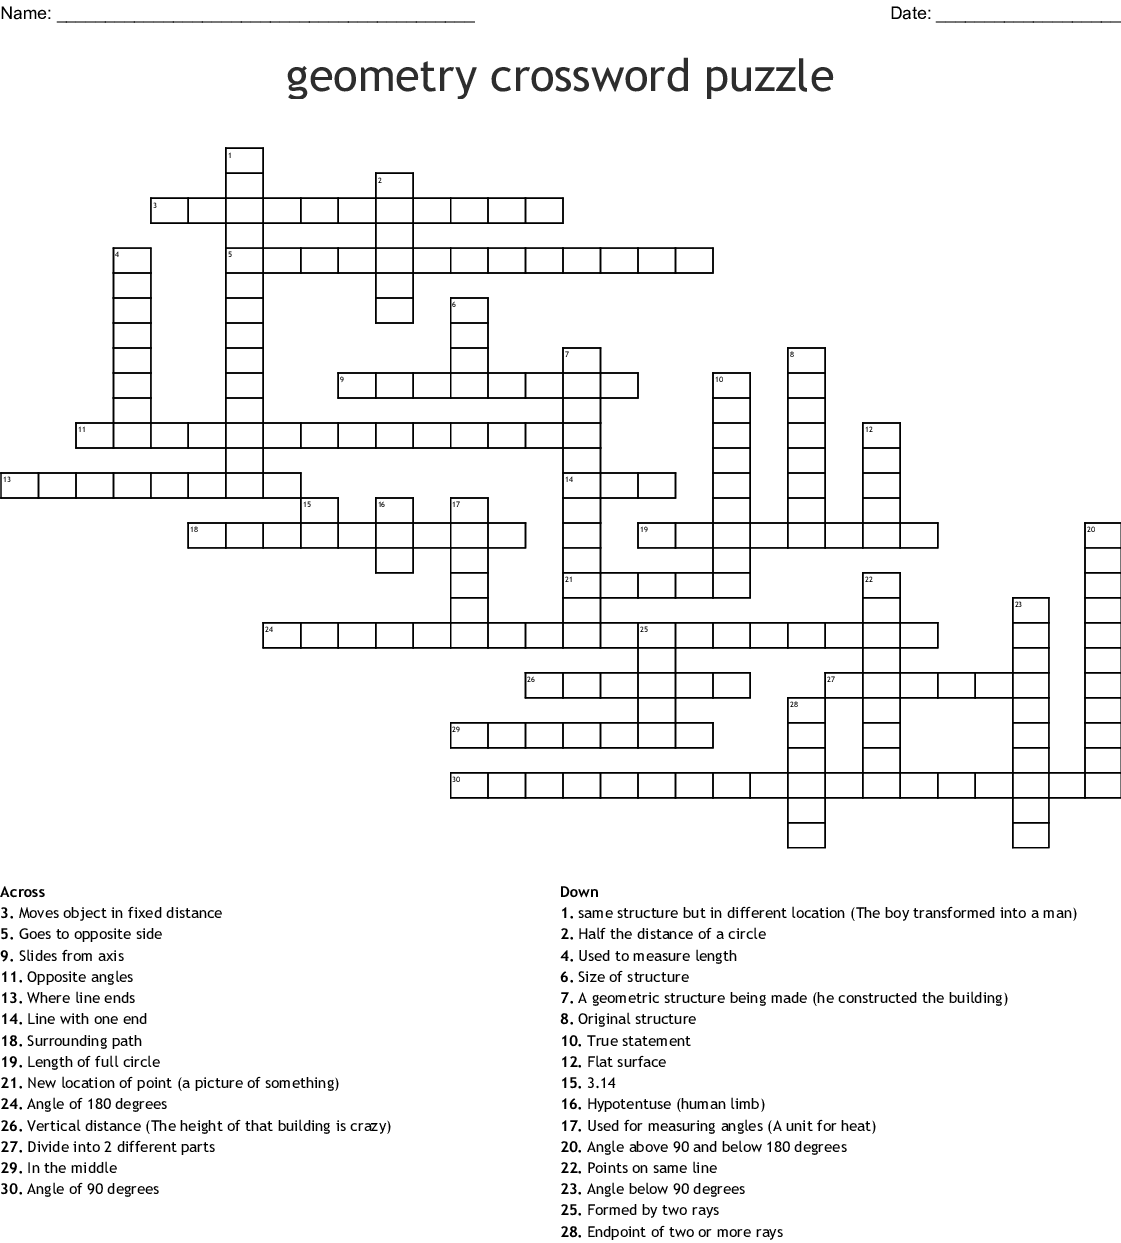 Geometry Crossword Puzzle